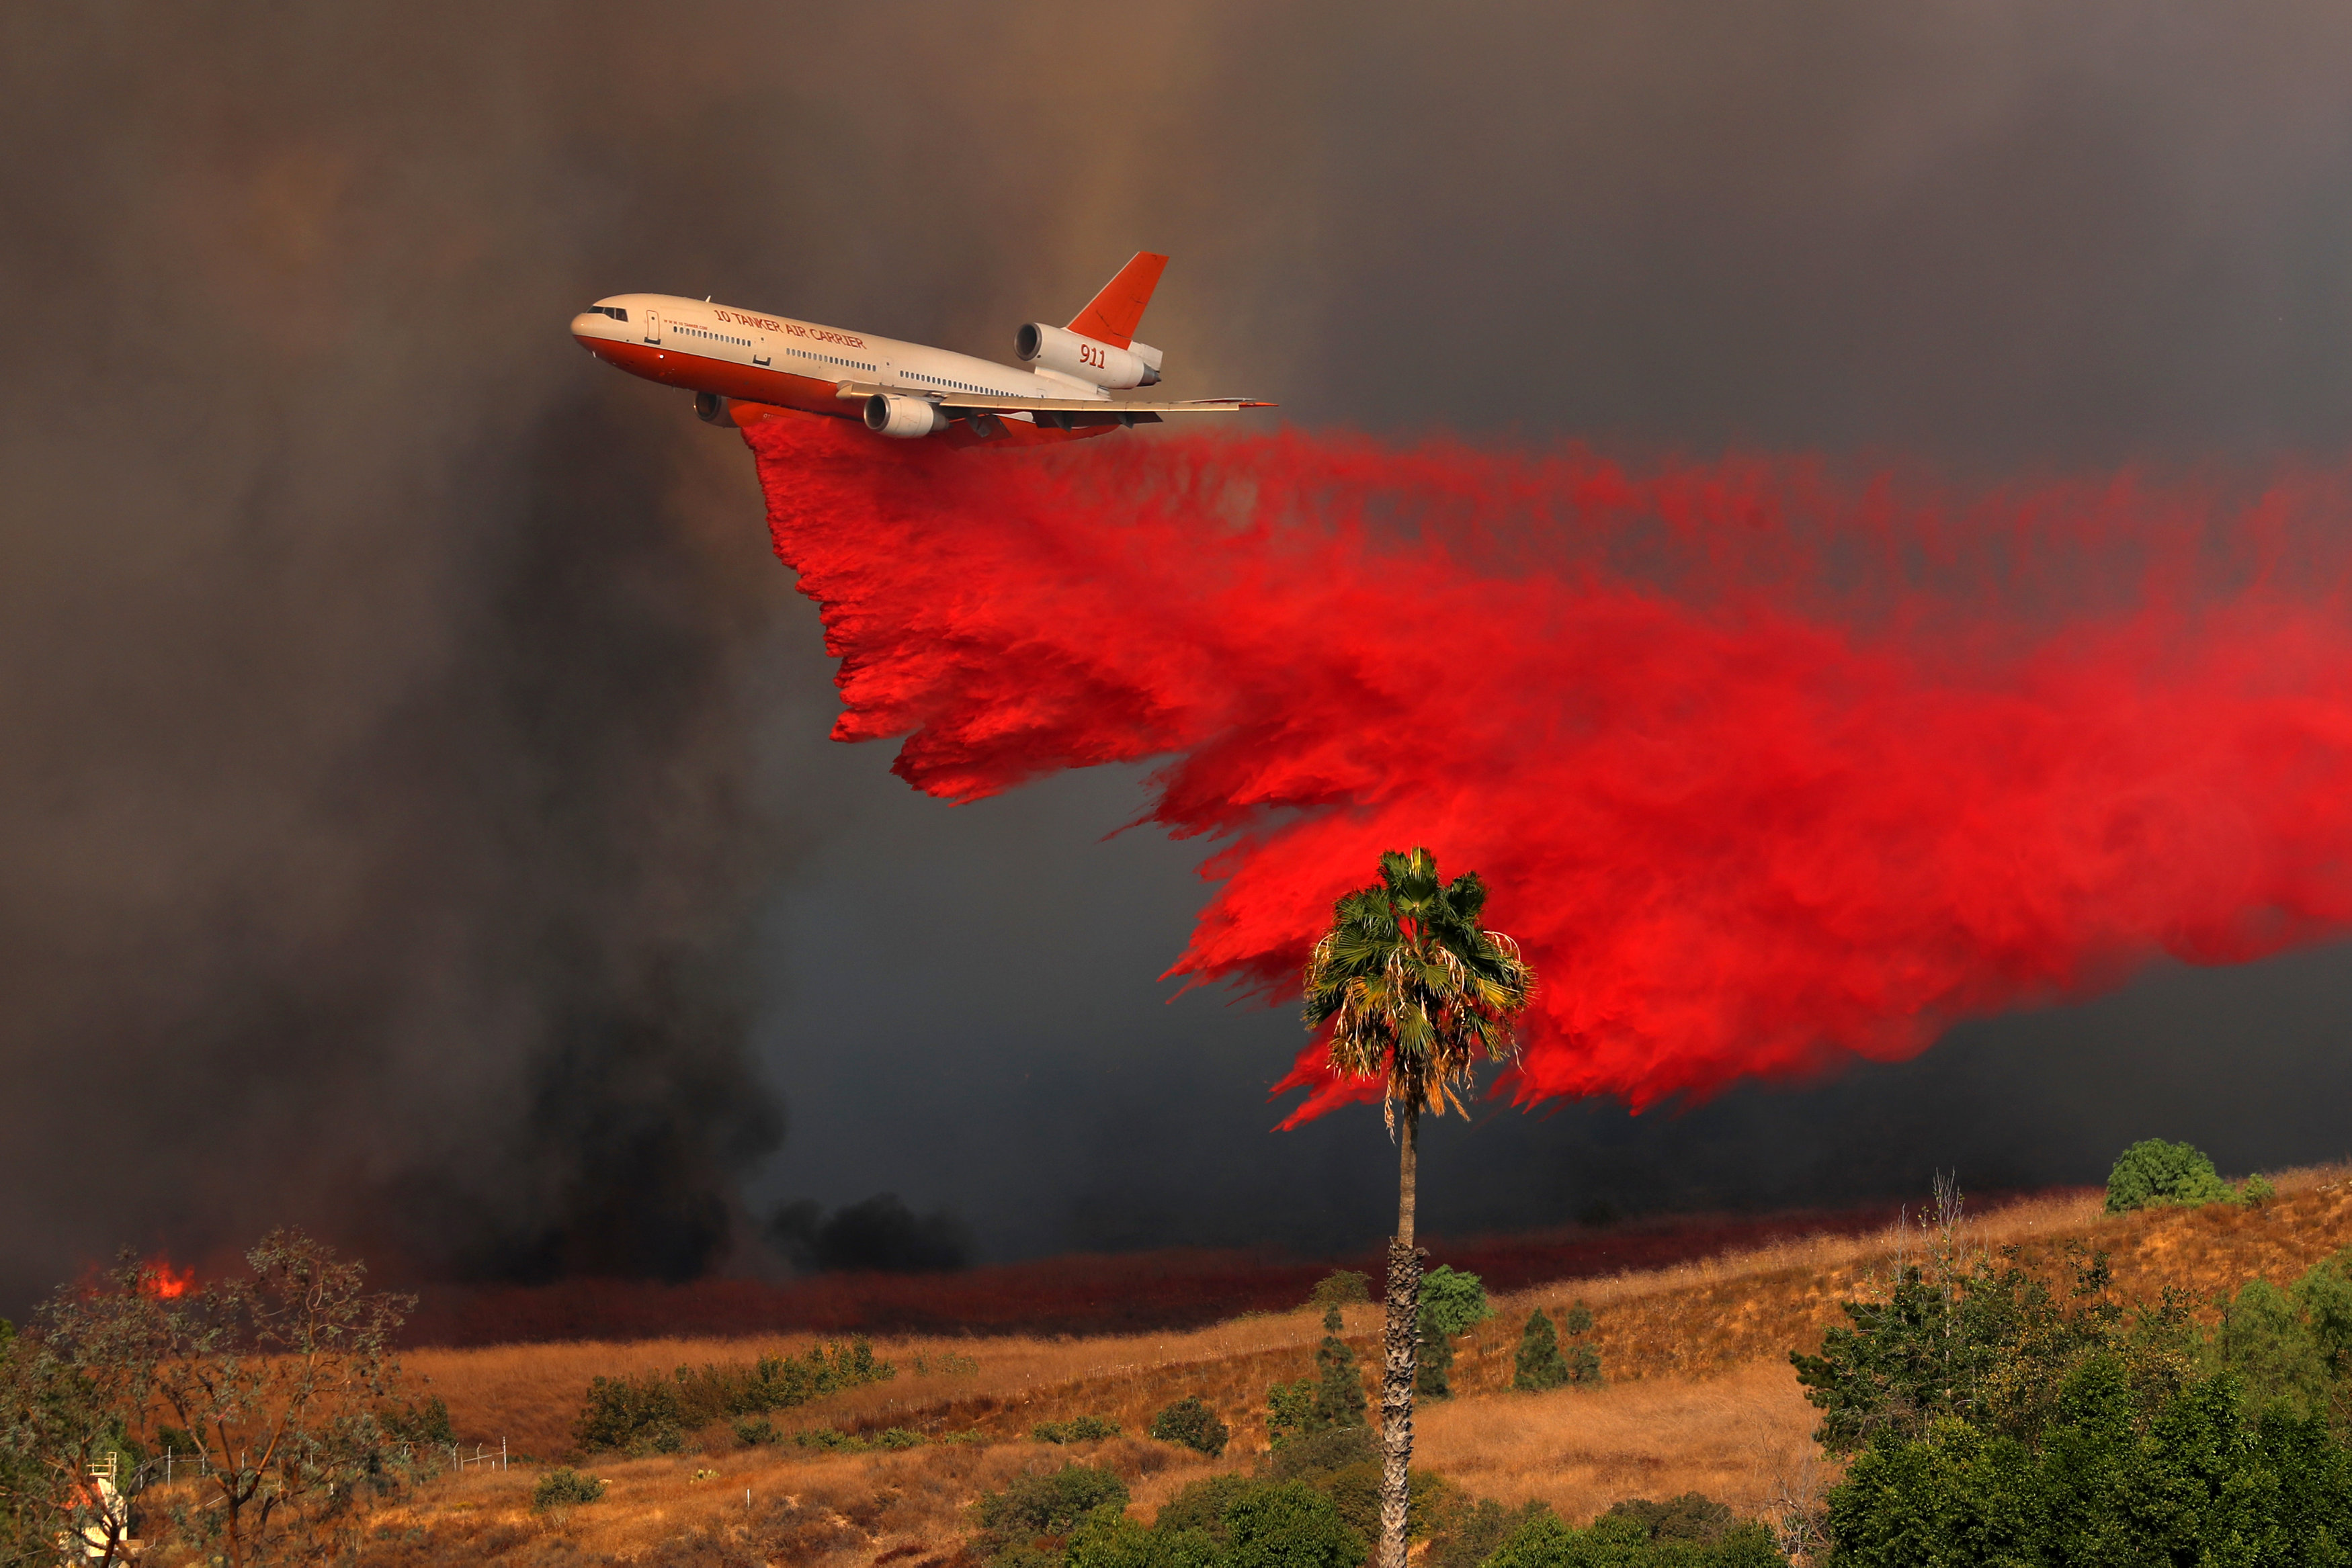 A DC-10 aircraft drops fire retardant on a wind driven wildfire in Orange, California, U.S., October 9, 2017.